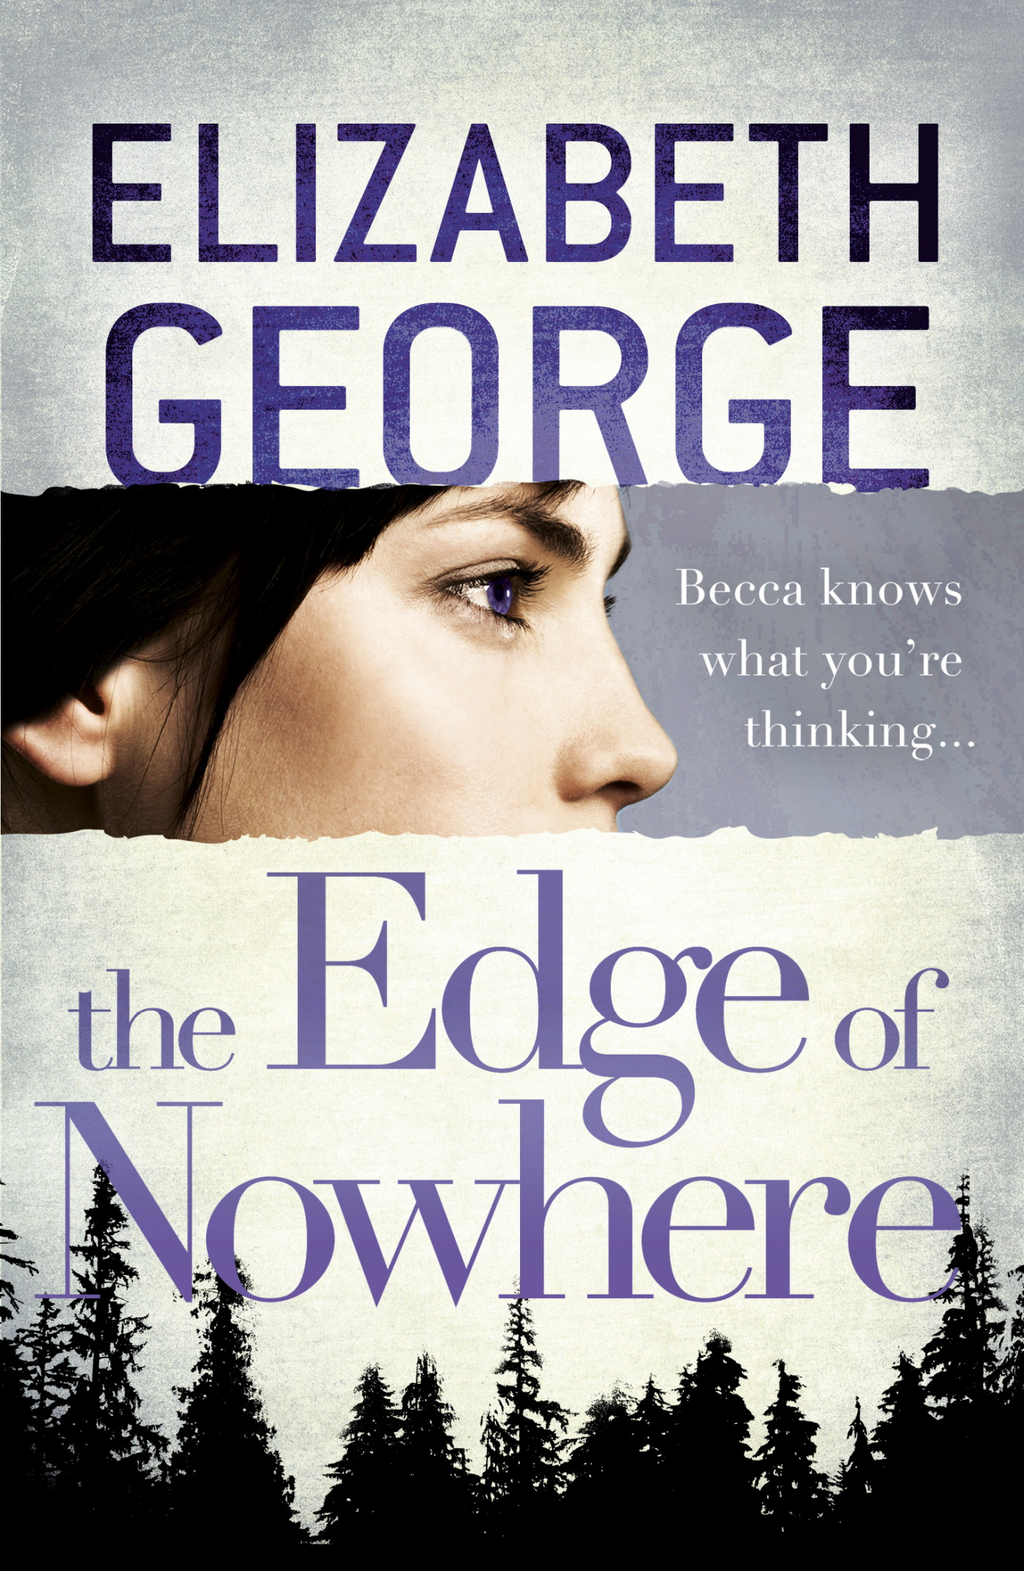 The Edge of Nowhere Book 1 of The Edge of Nowhere Series